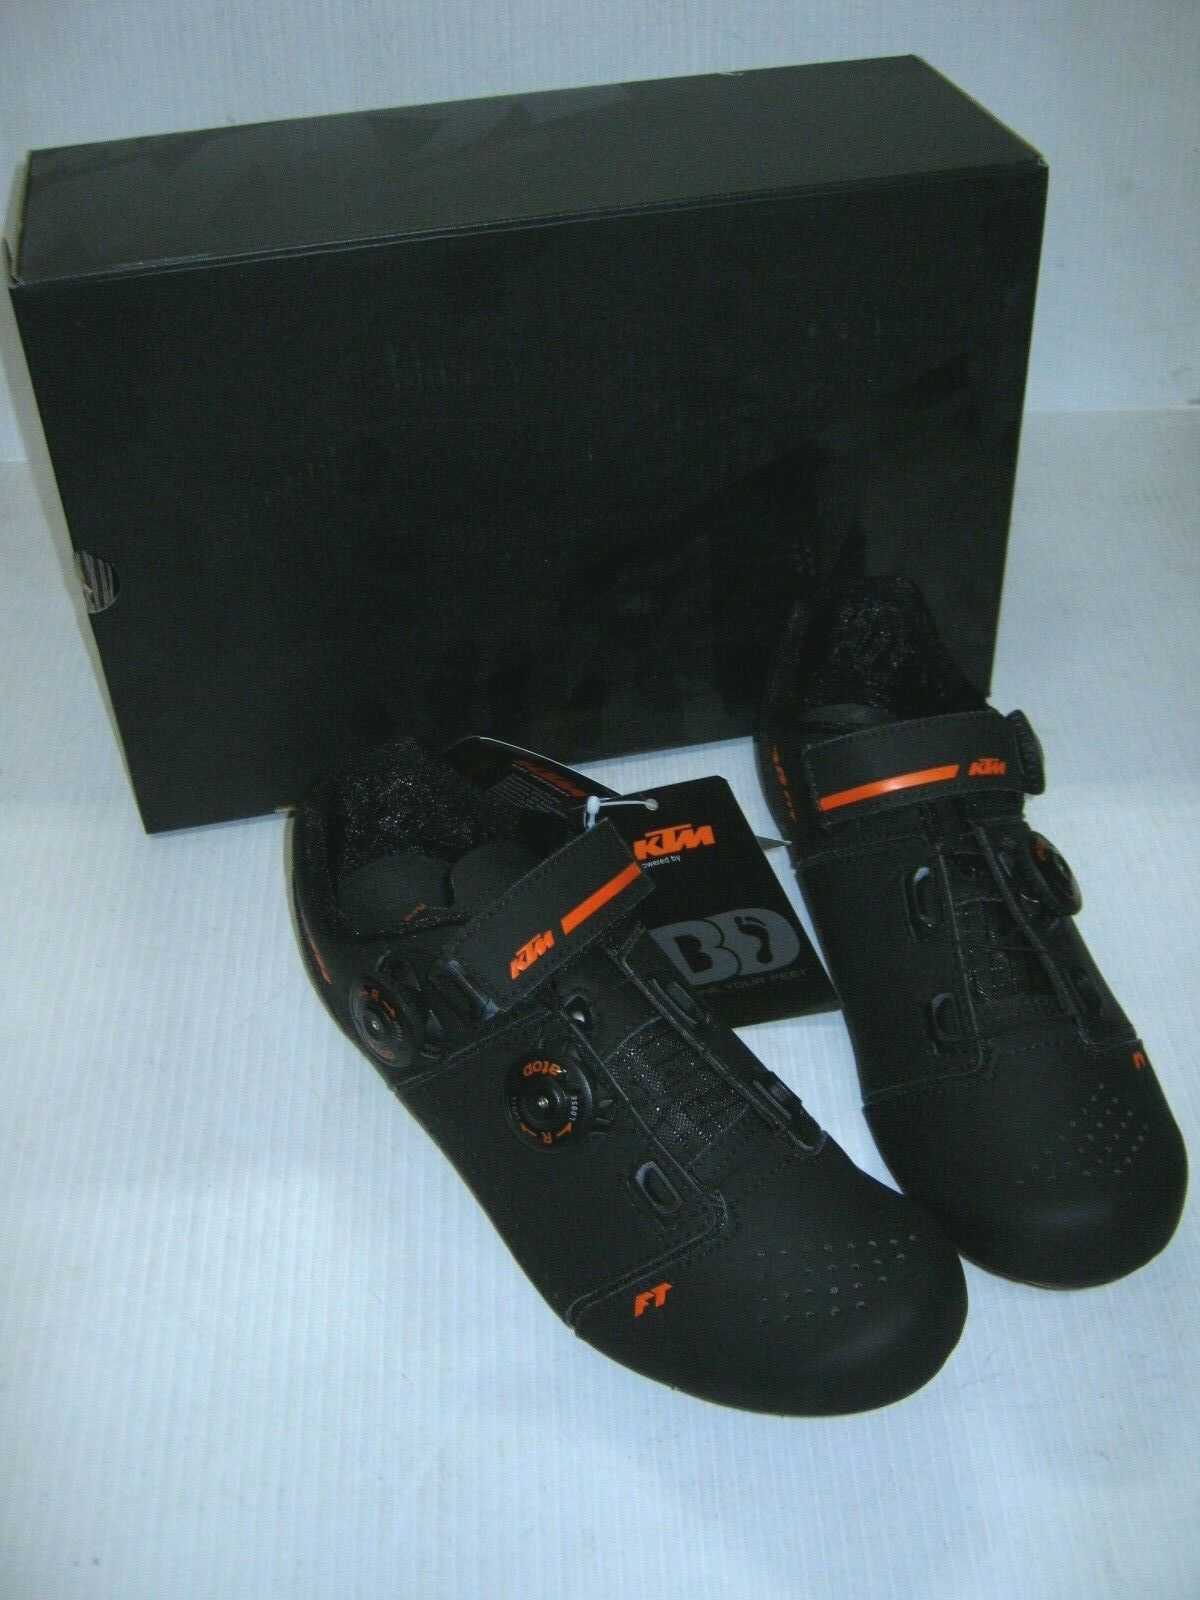 KTM Bike Industries Factory Road Carbon  Bike Cycling shoes Size 10.5  cheap in high quality